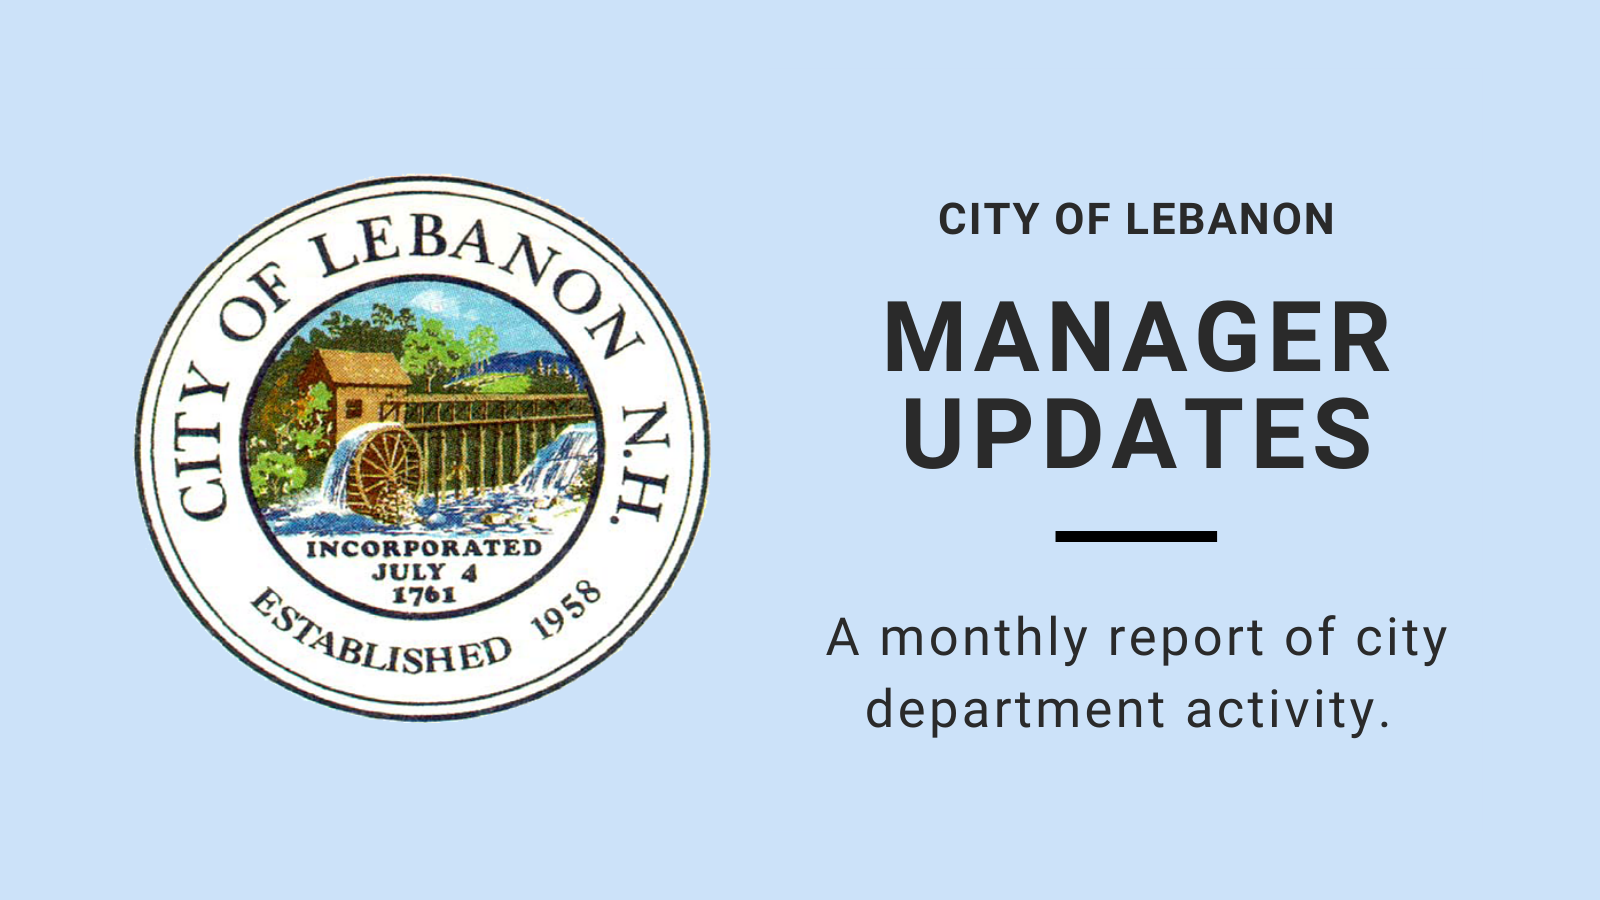 Manager Update with City seal